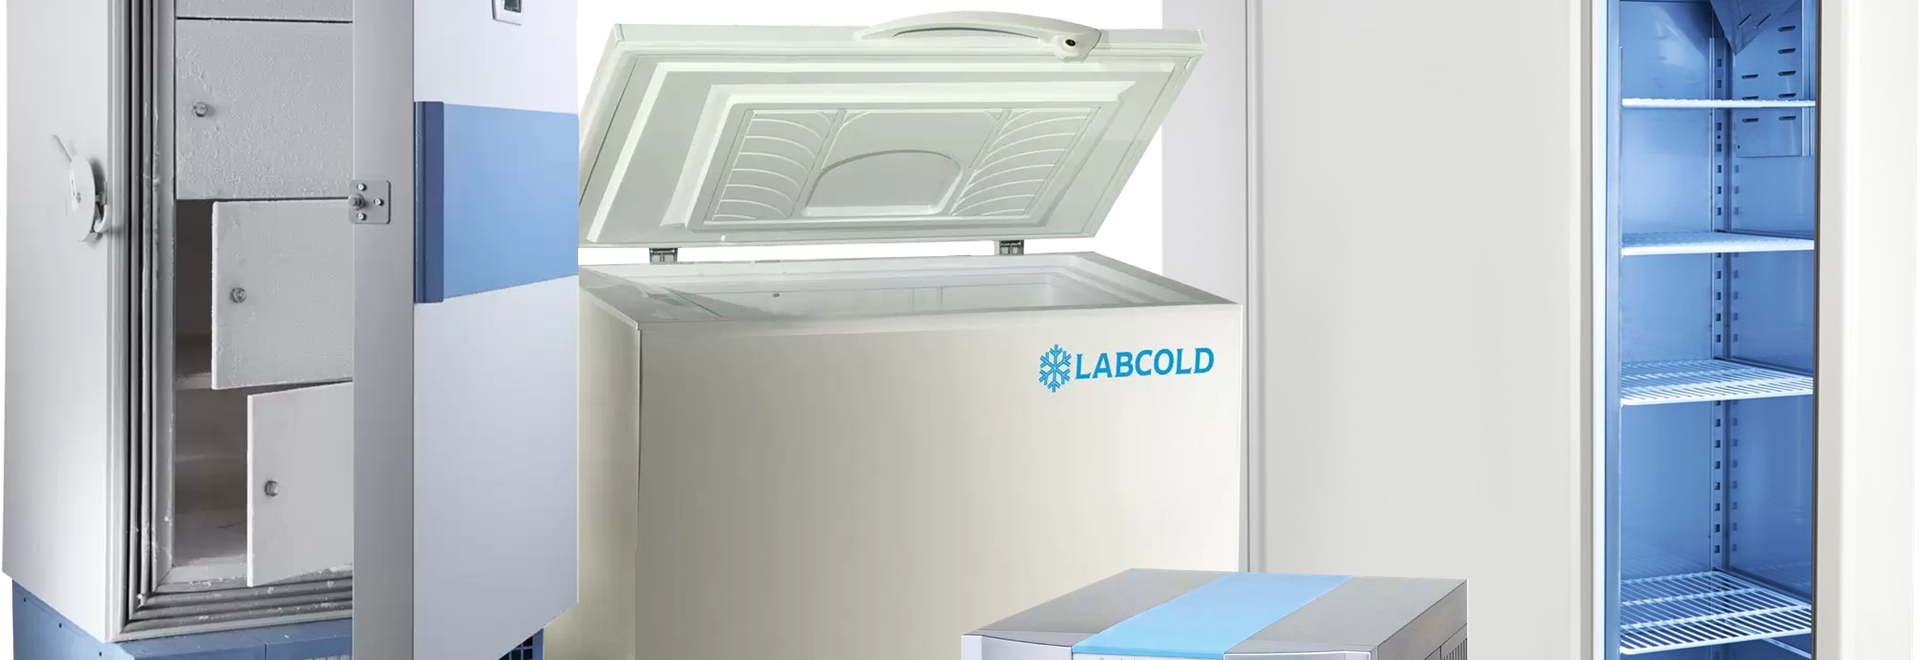 Distribution Agreement to Supply Leading Scientific/Medical Fridges and Freezers Announced